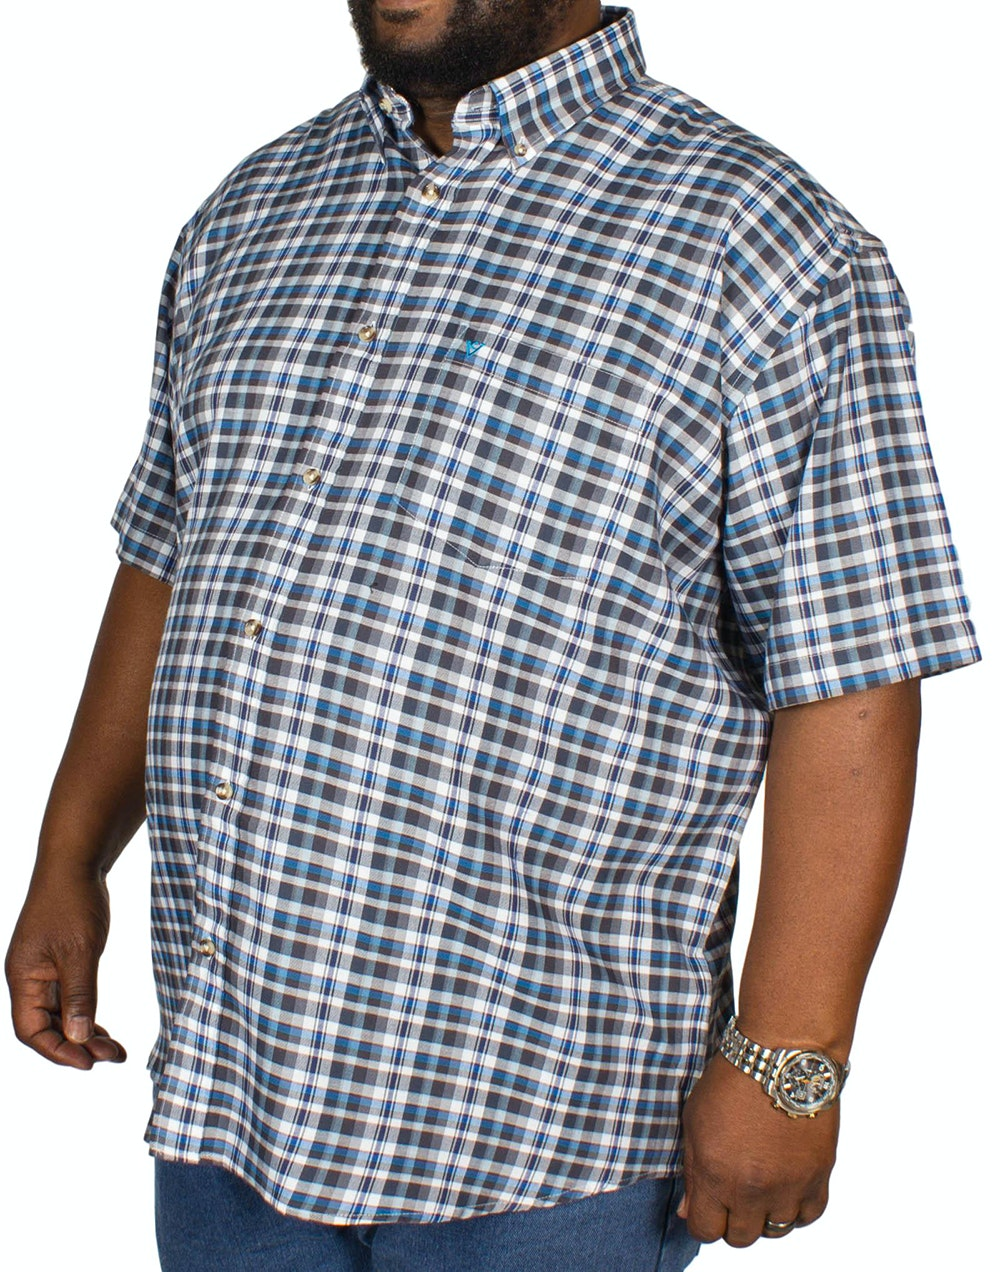 Cotton Valley Twill Check Short Sleeve Shirt Grey